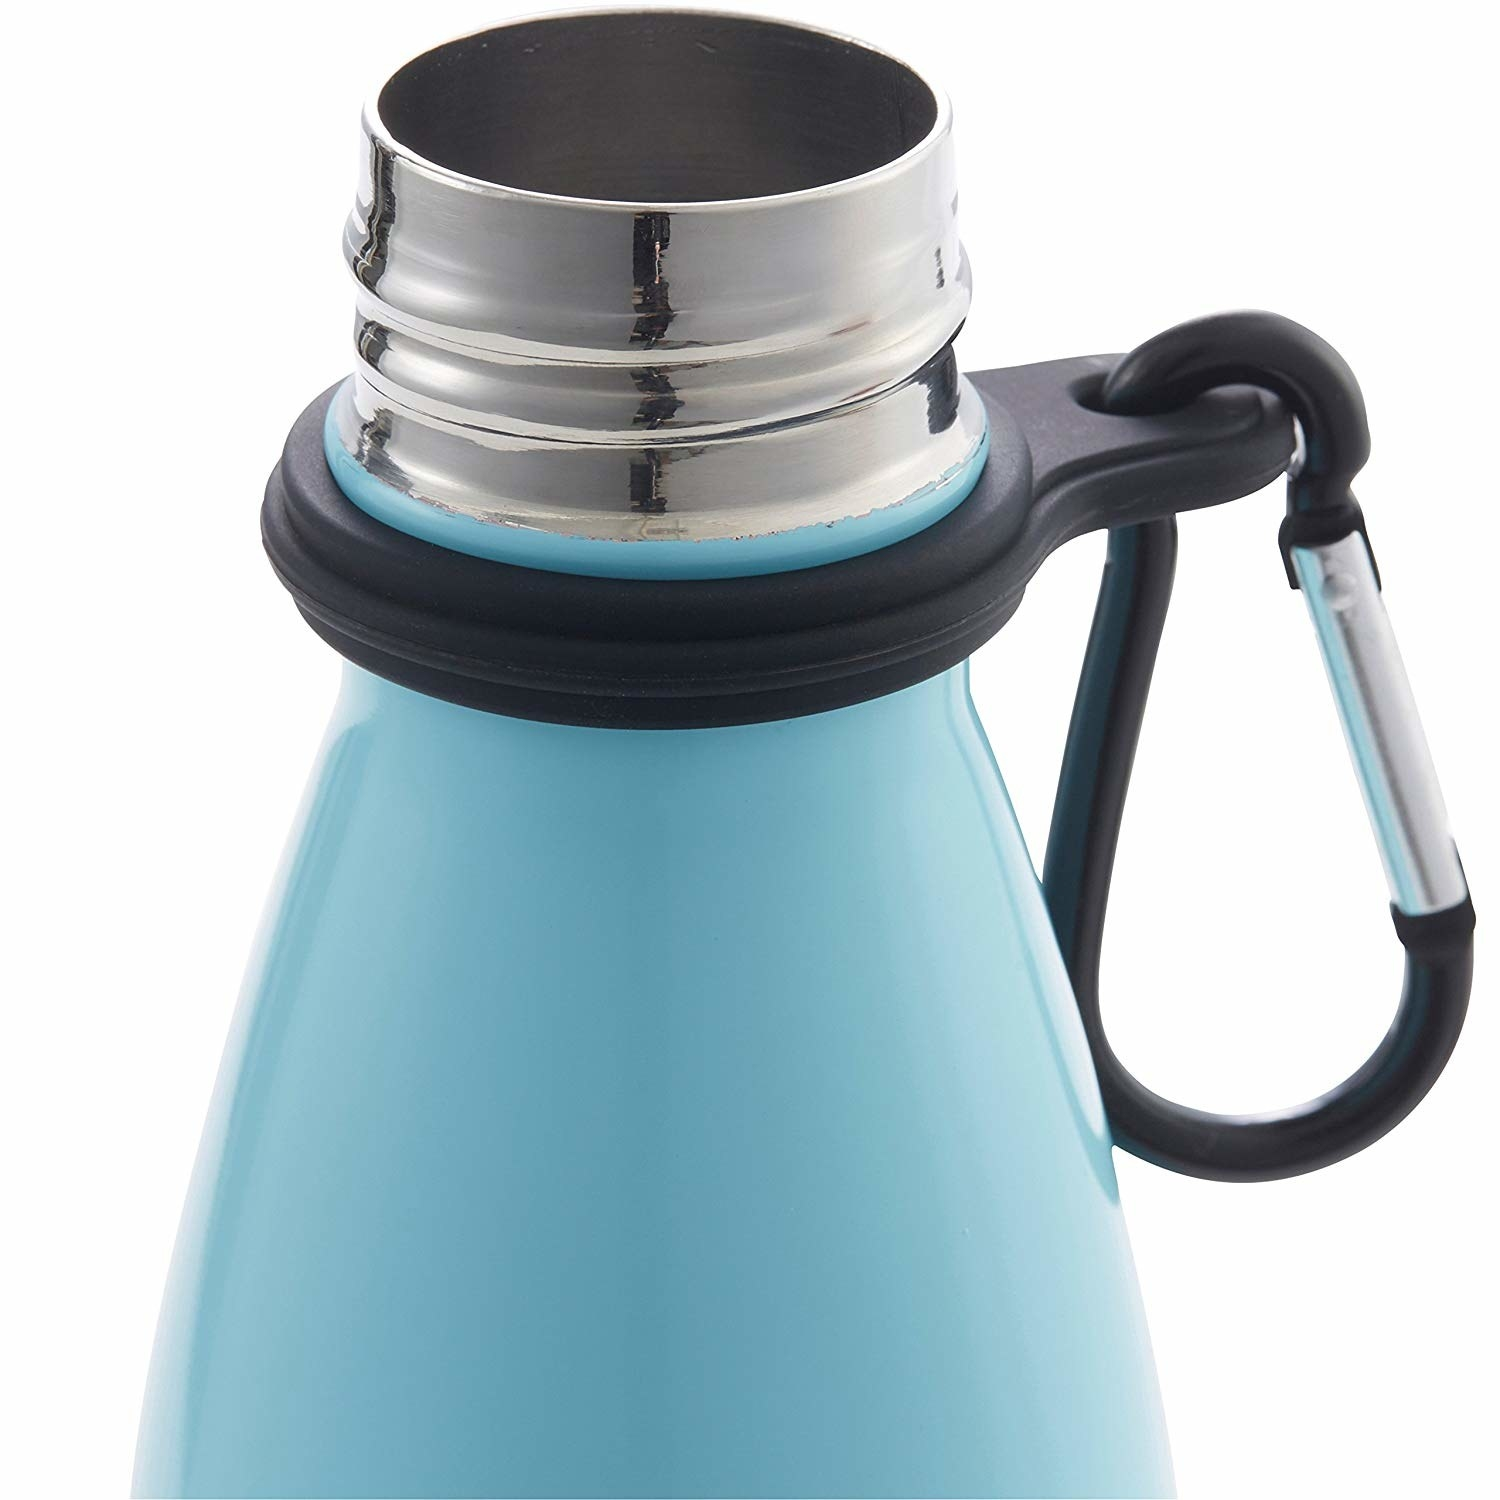 Water bottle with the holder and carabiner attached to the neck